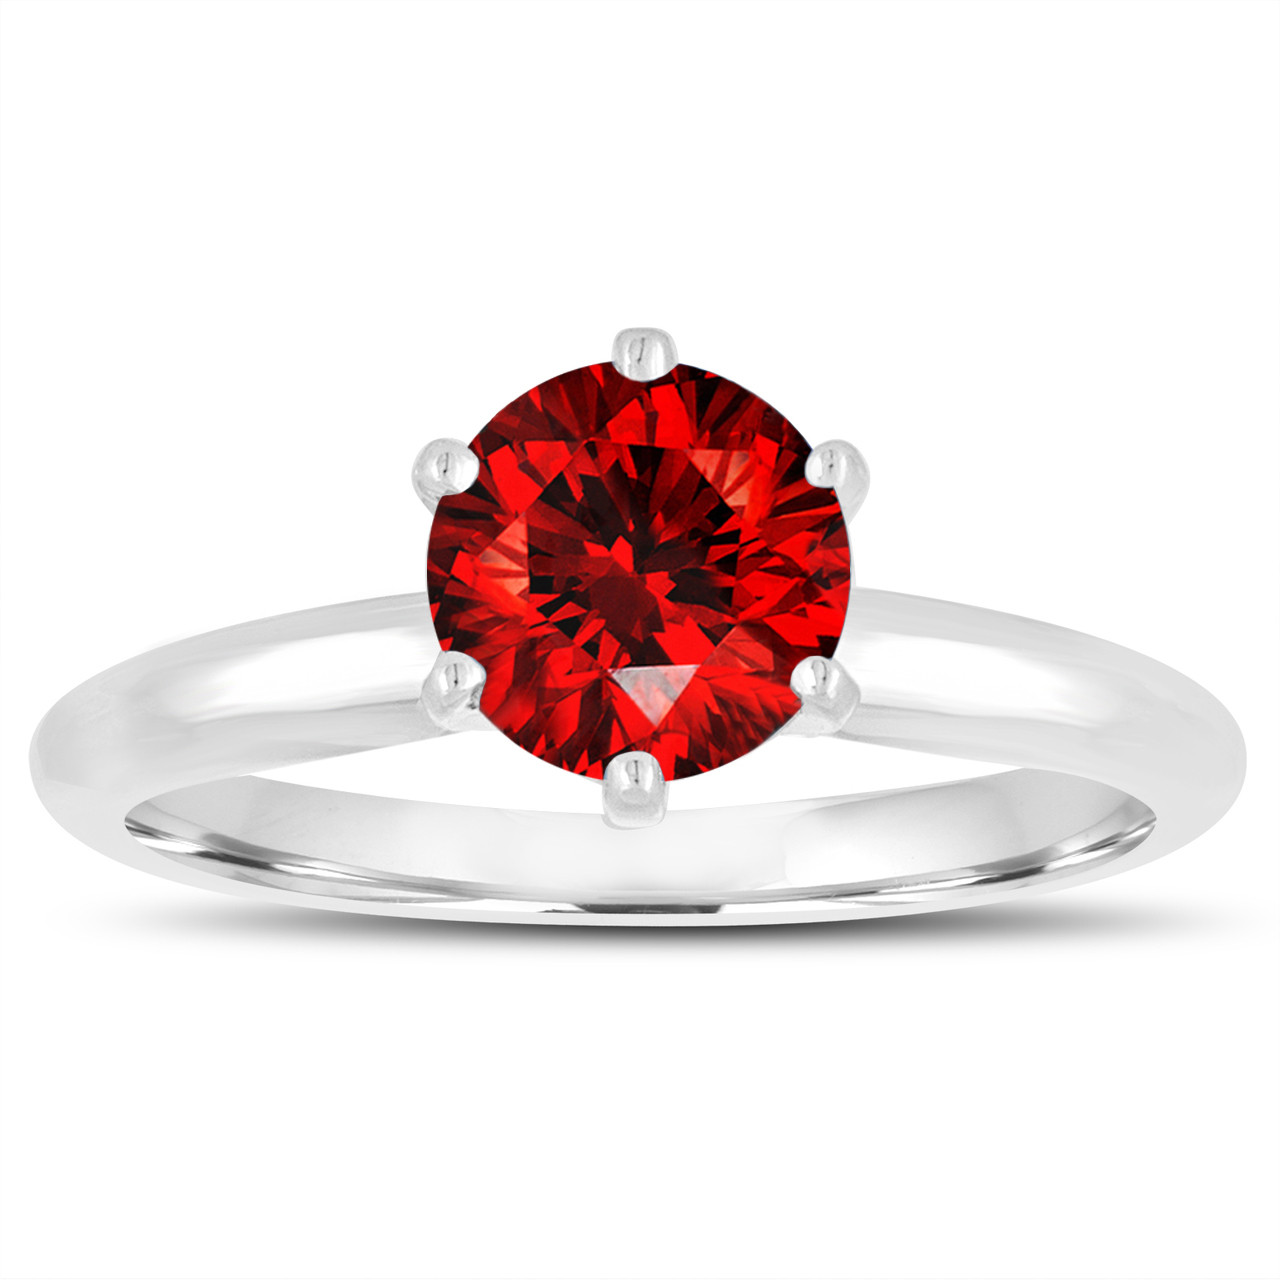 0 70 Carat Fancy Red Diamond Solitaire Engagement Ring 14k